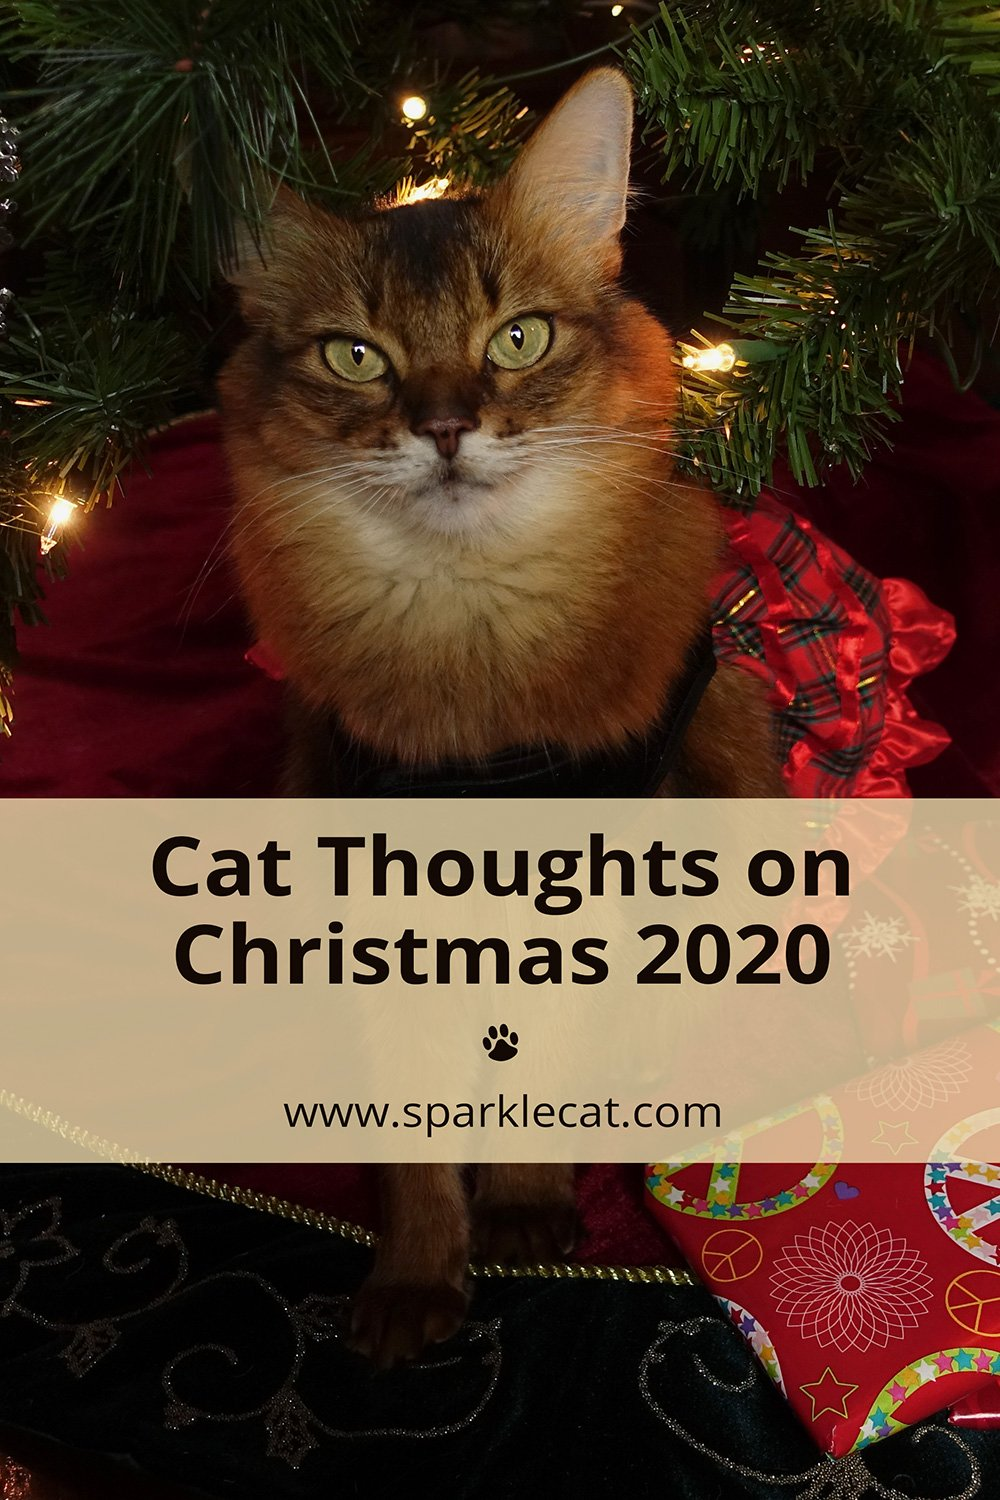 Cat Thoughts on Christmas 2020